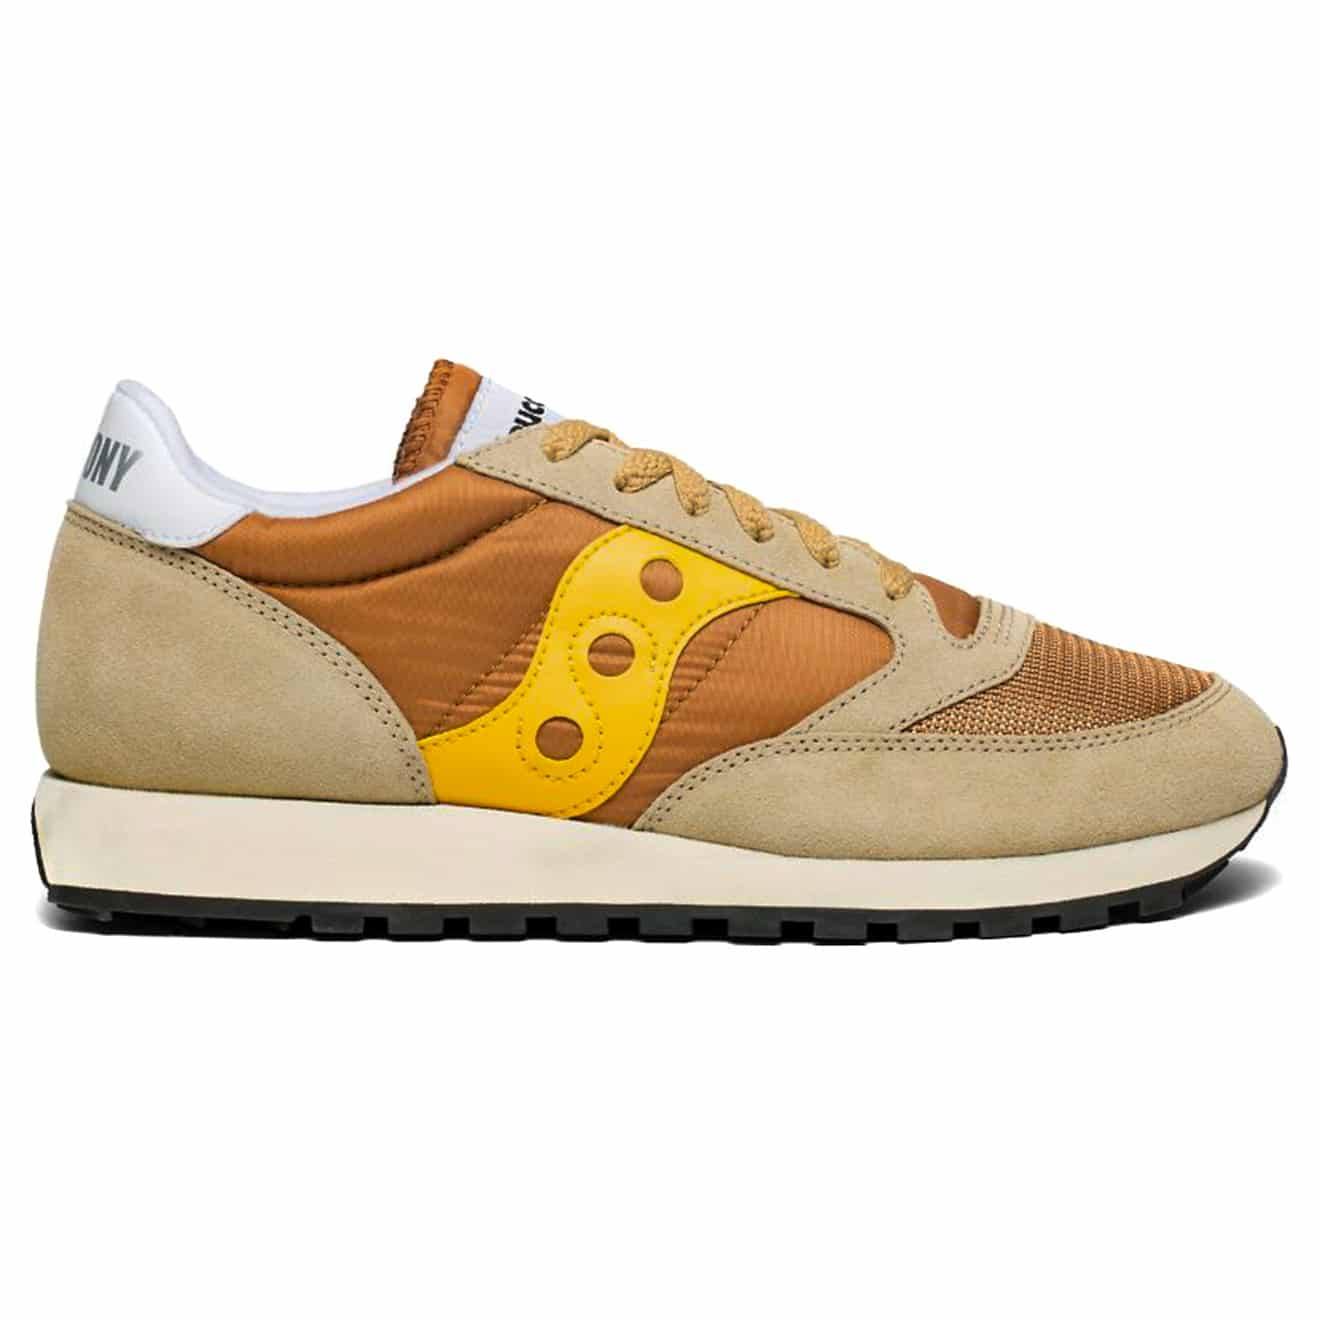 62f607e7c REDUCED! Saucony Jazz Original Vintage Trainers Tan   Yellow